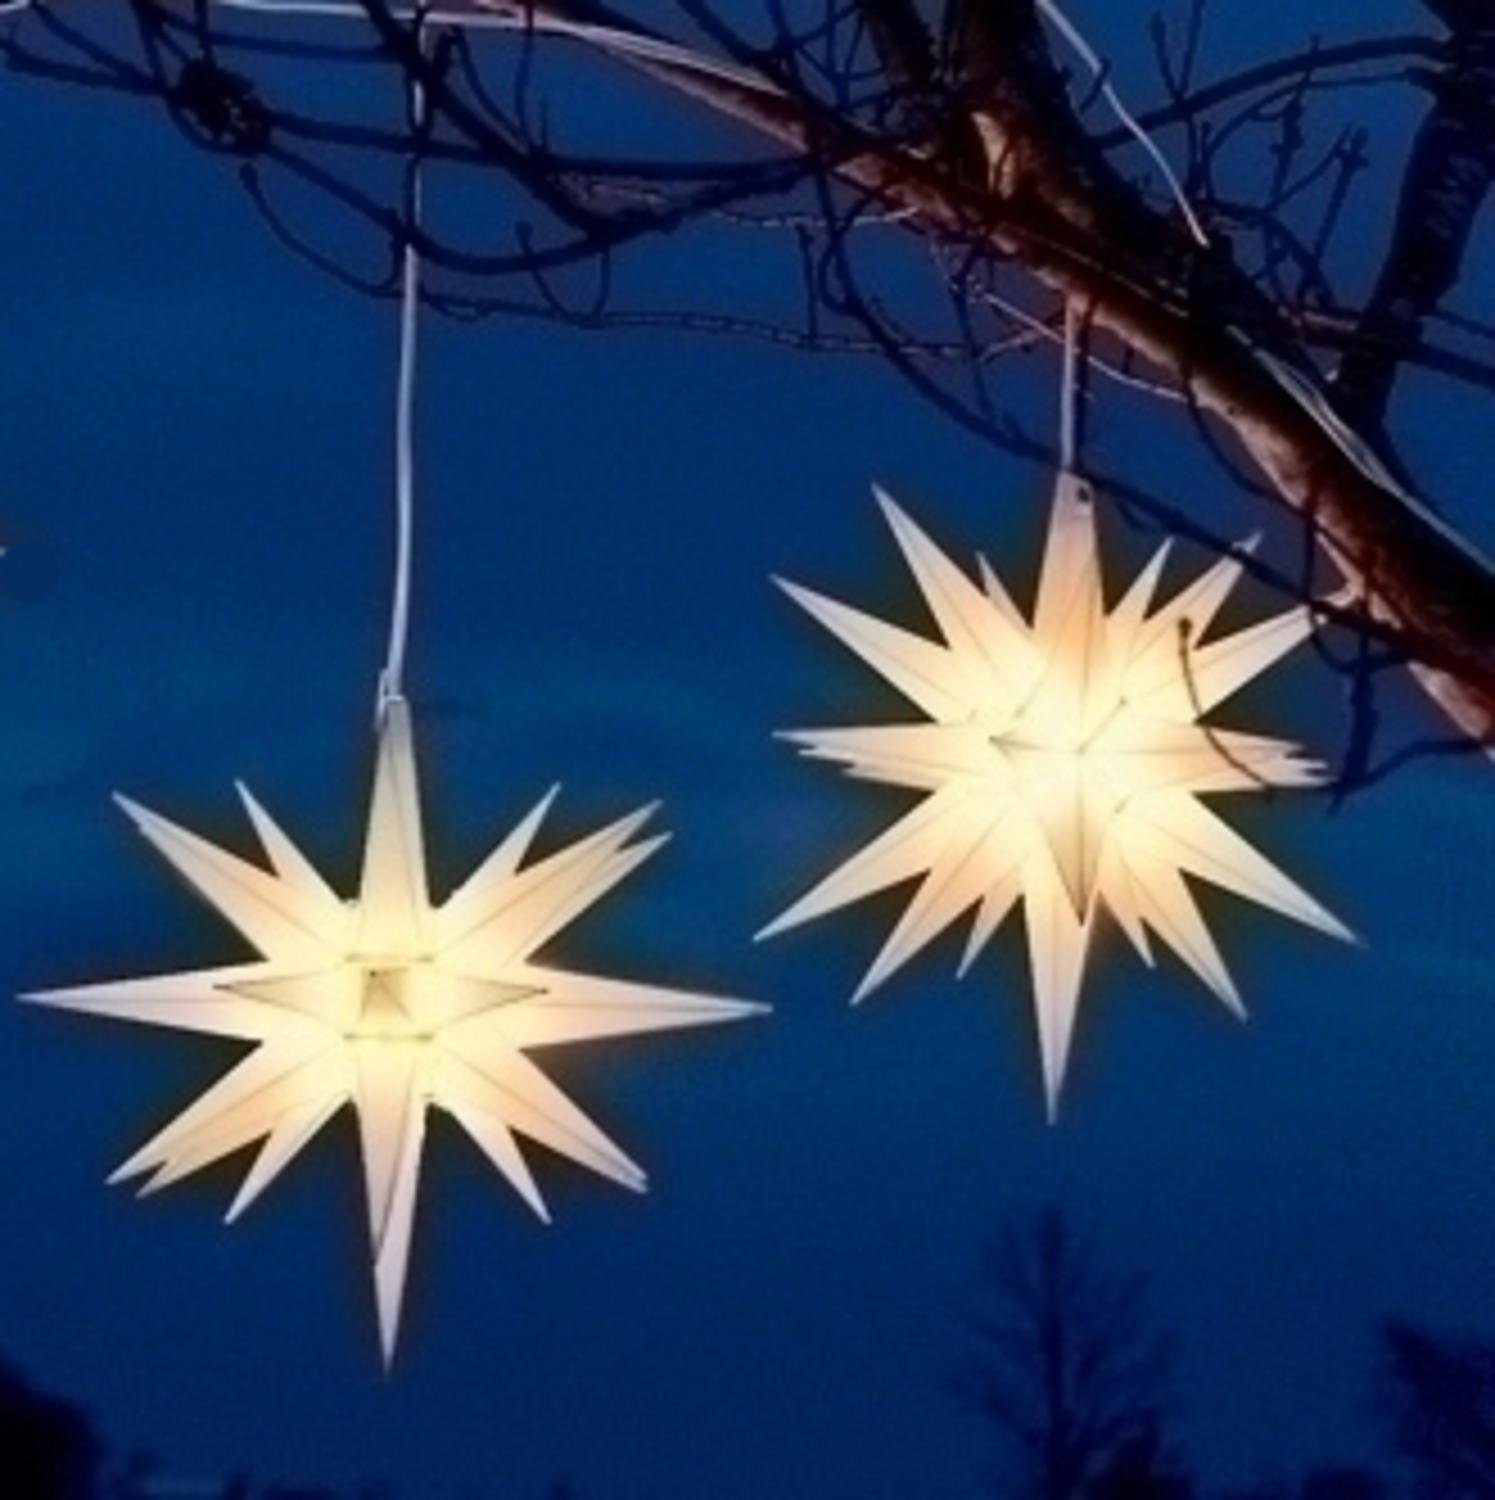 Amazon.com: Pack of 2 White Moravian Star Hanging Christmas Lights ...